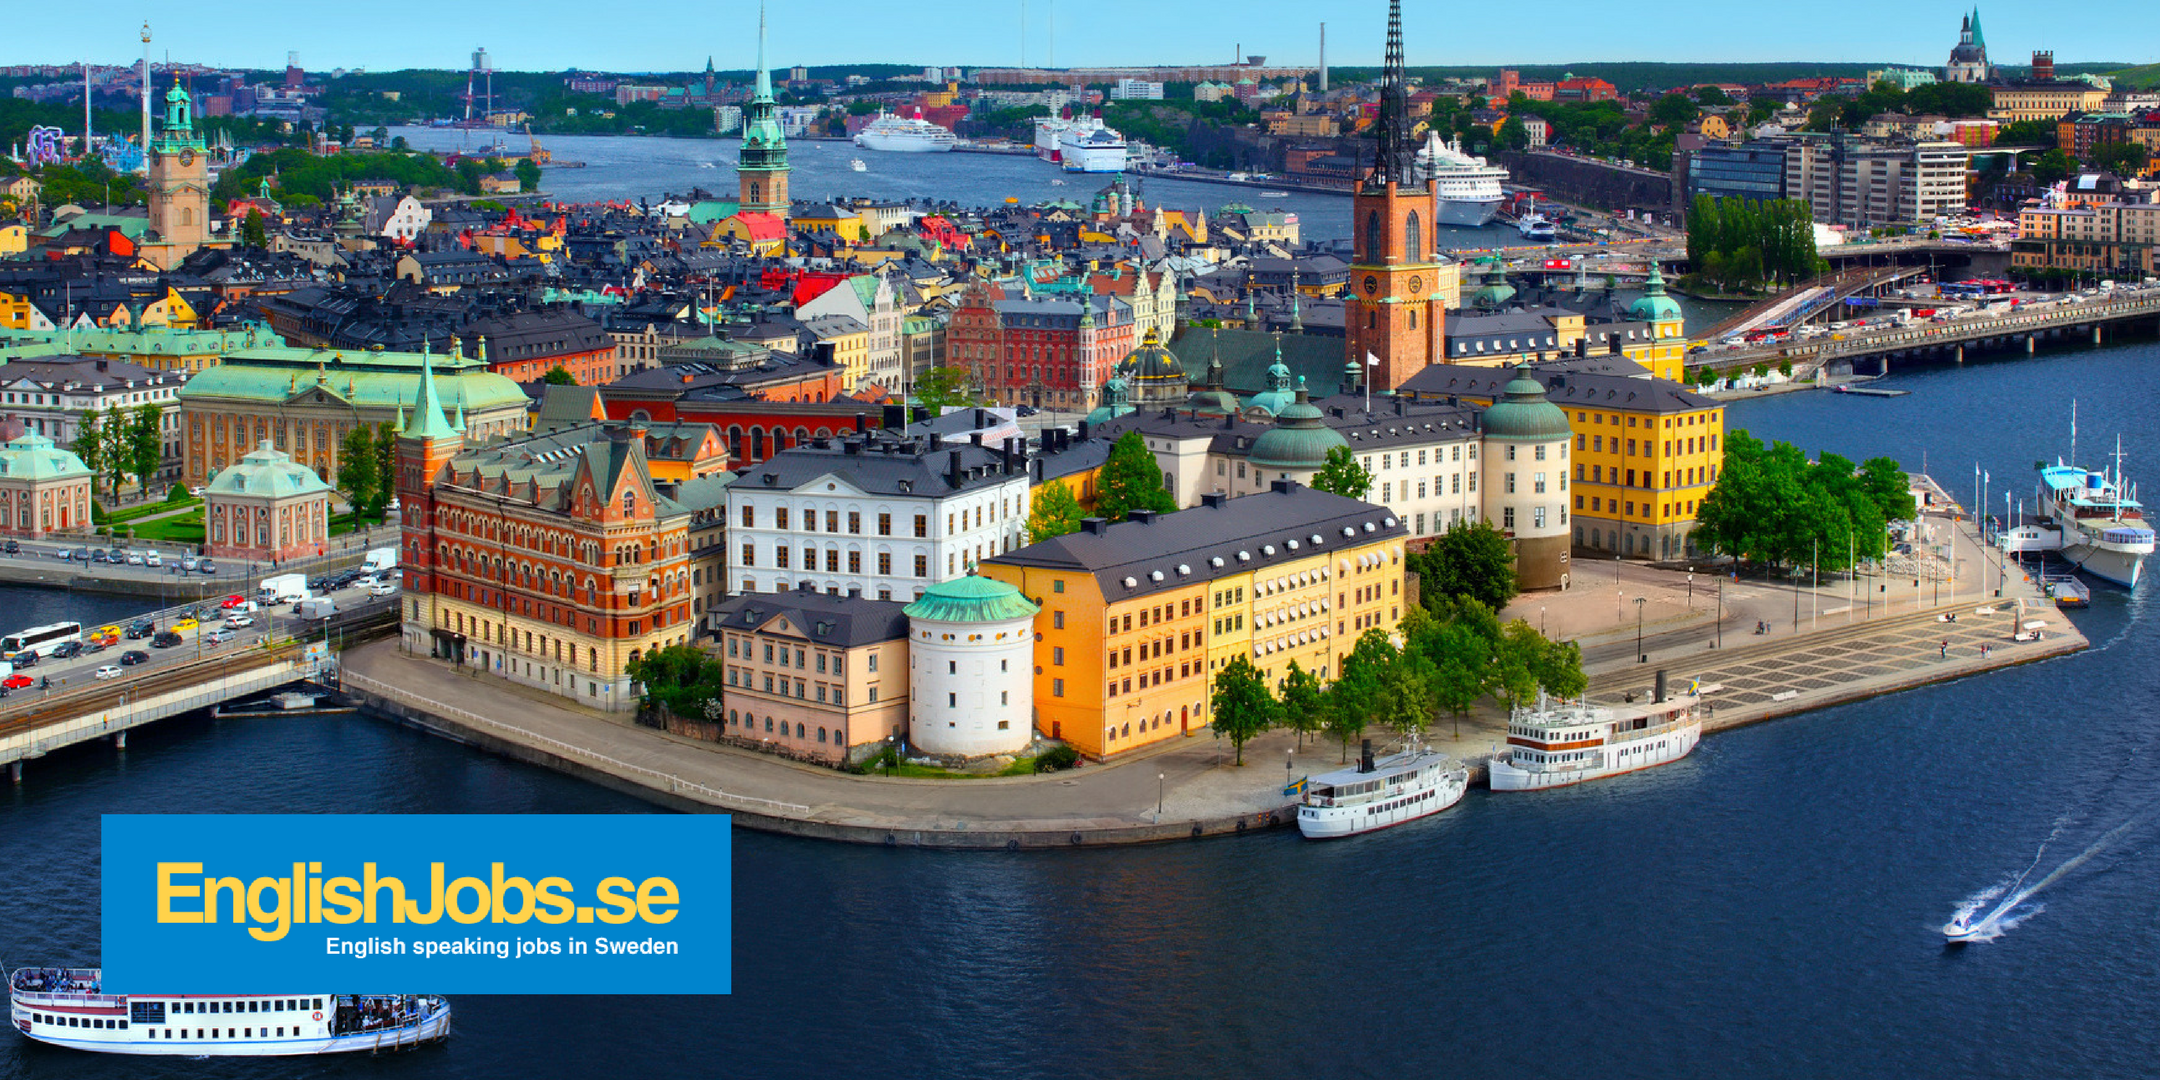 Work in Europe (Sweden, Denmark, Germany) - Your job search from Ottawa to Stockholm